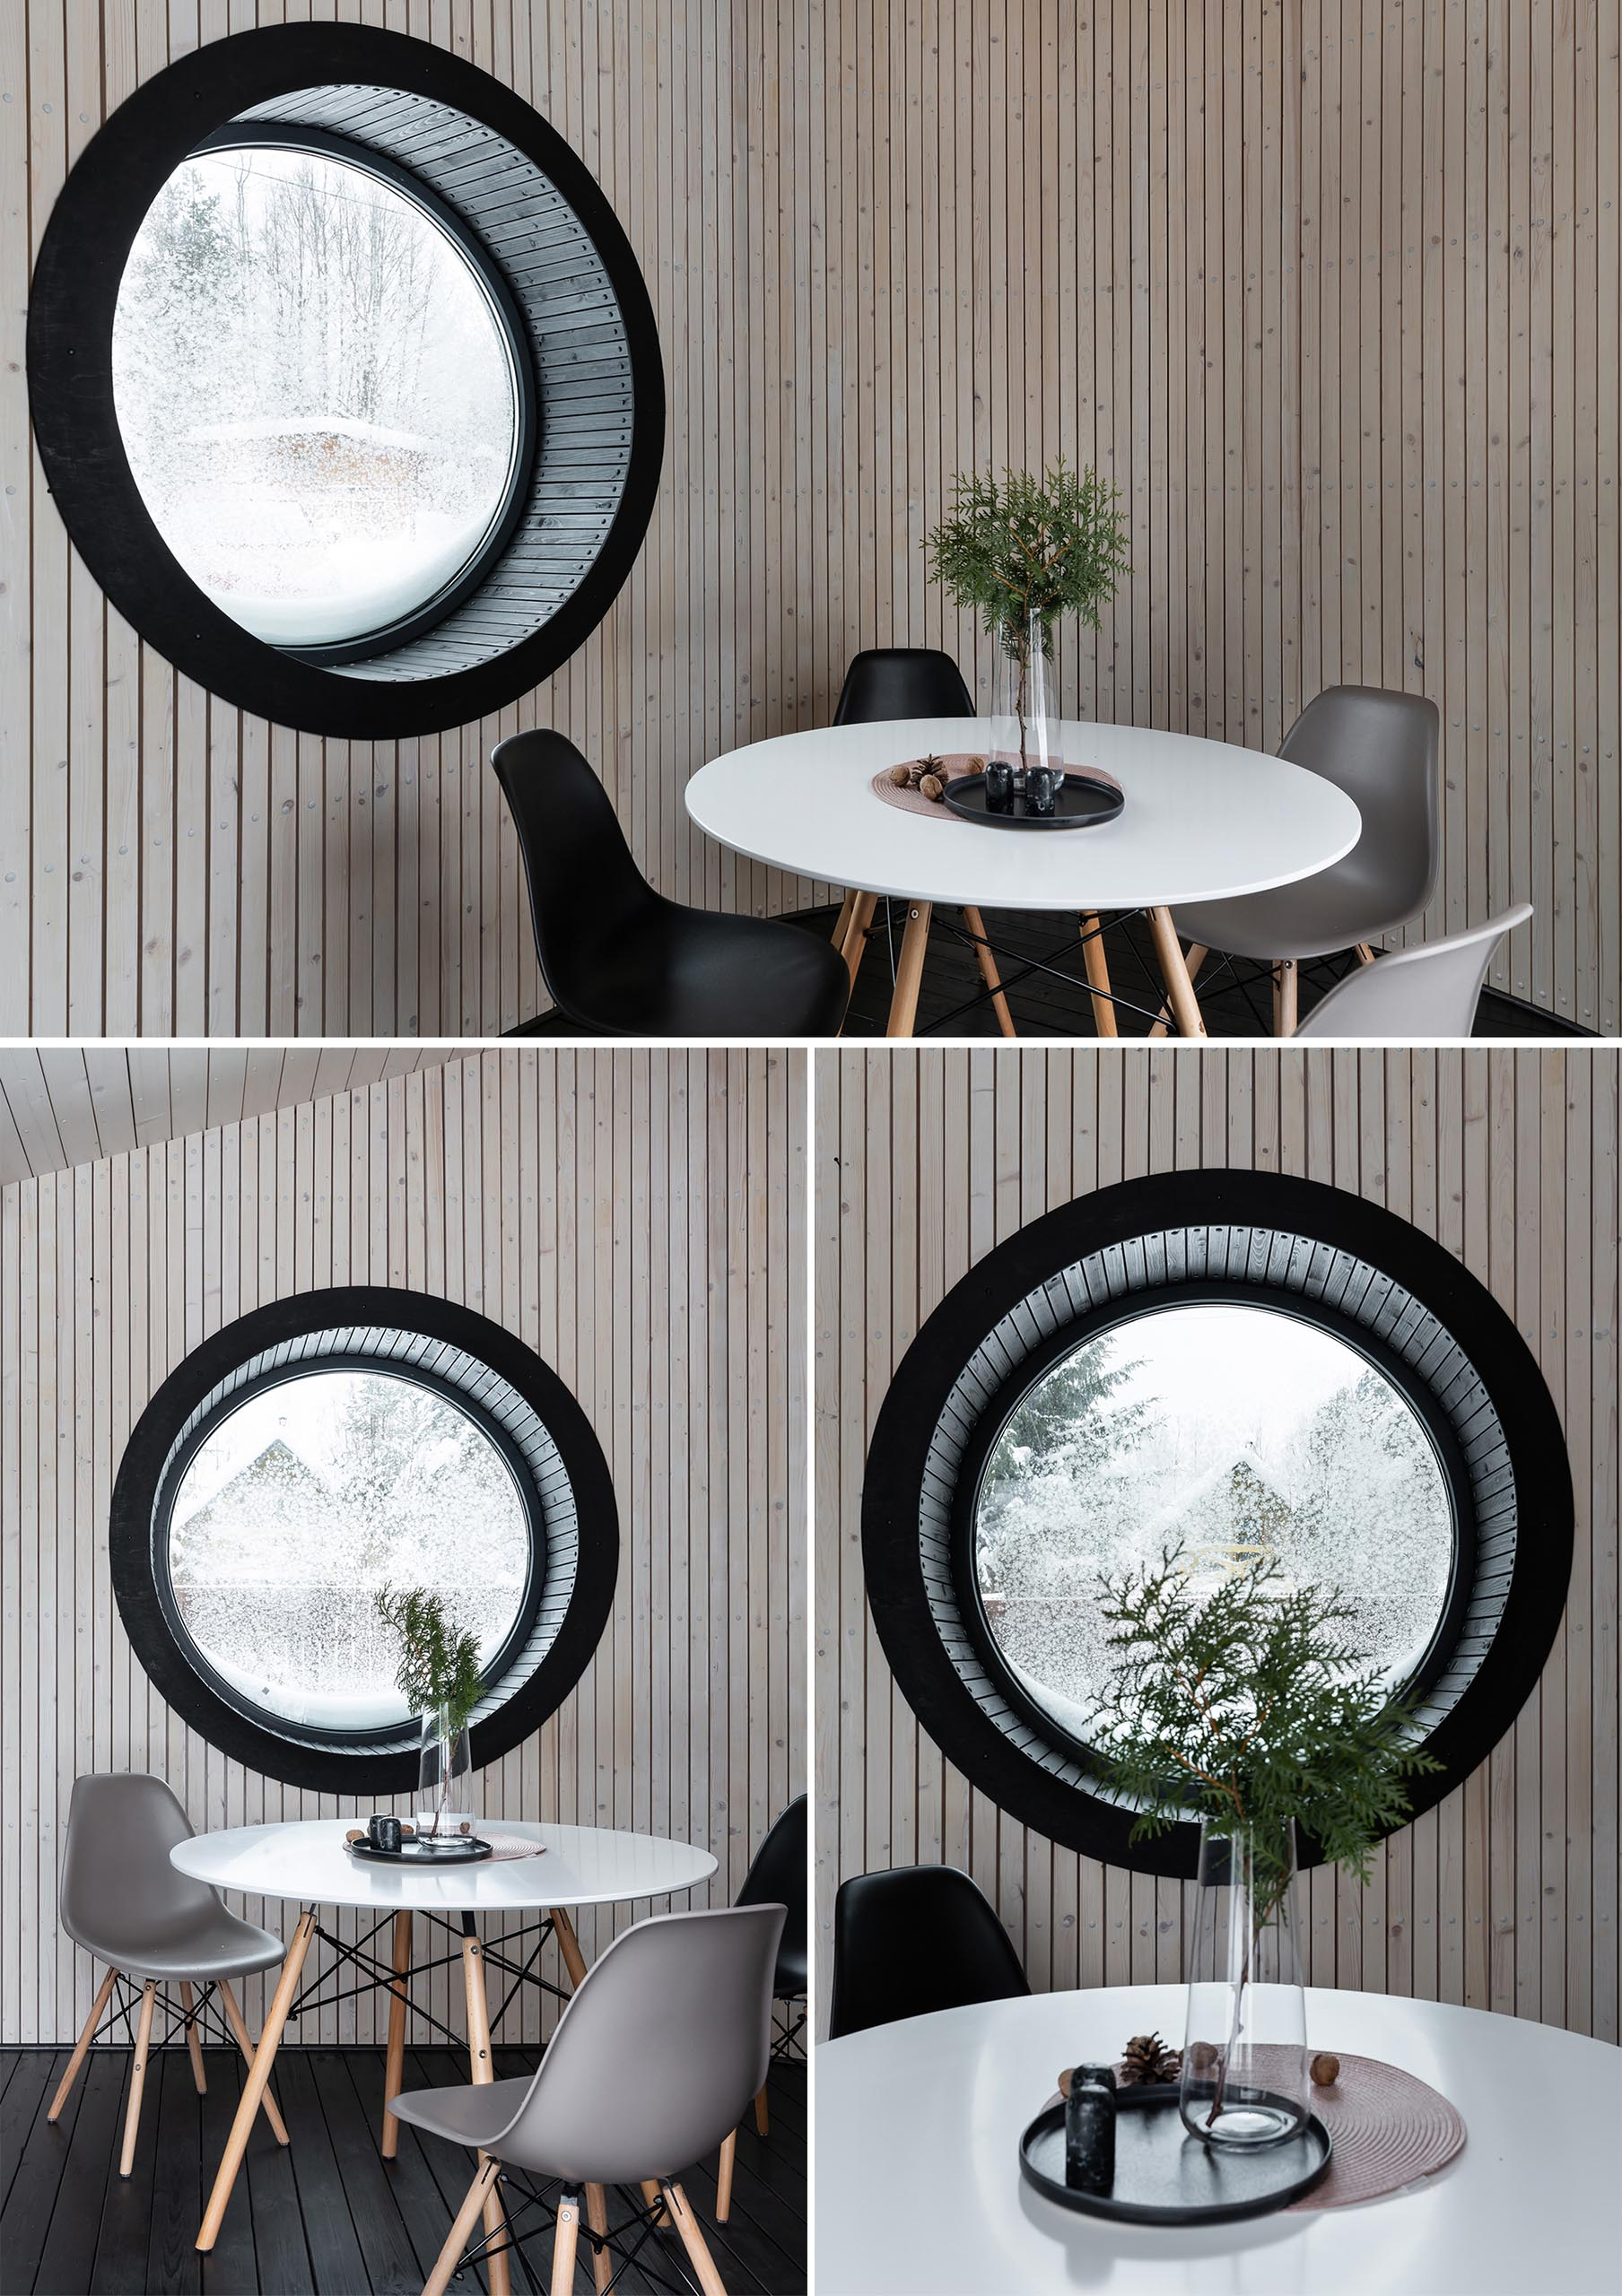 A round deep window with a black frame.